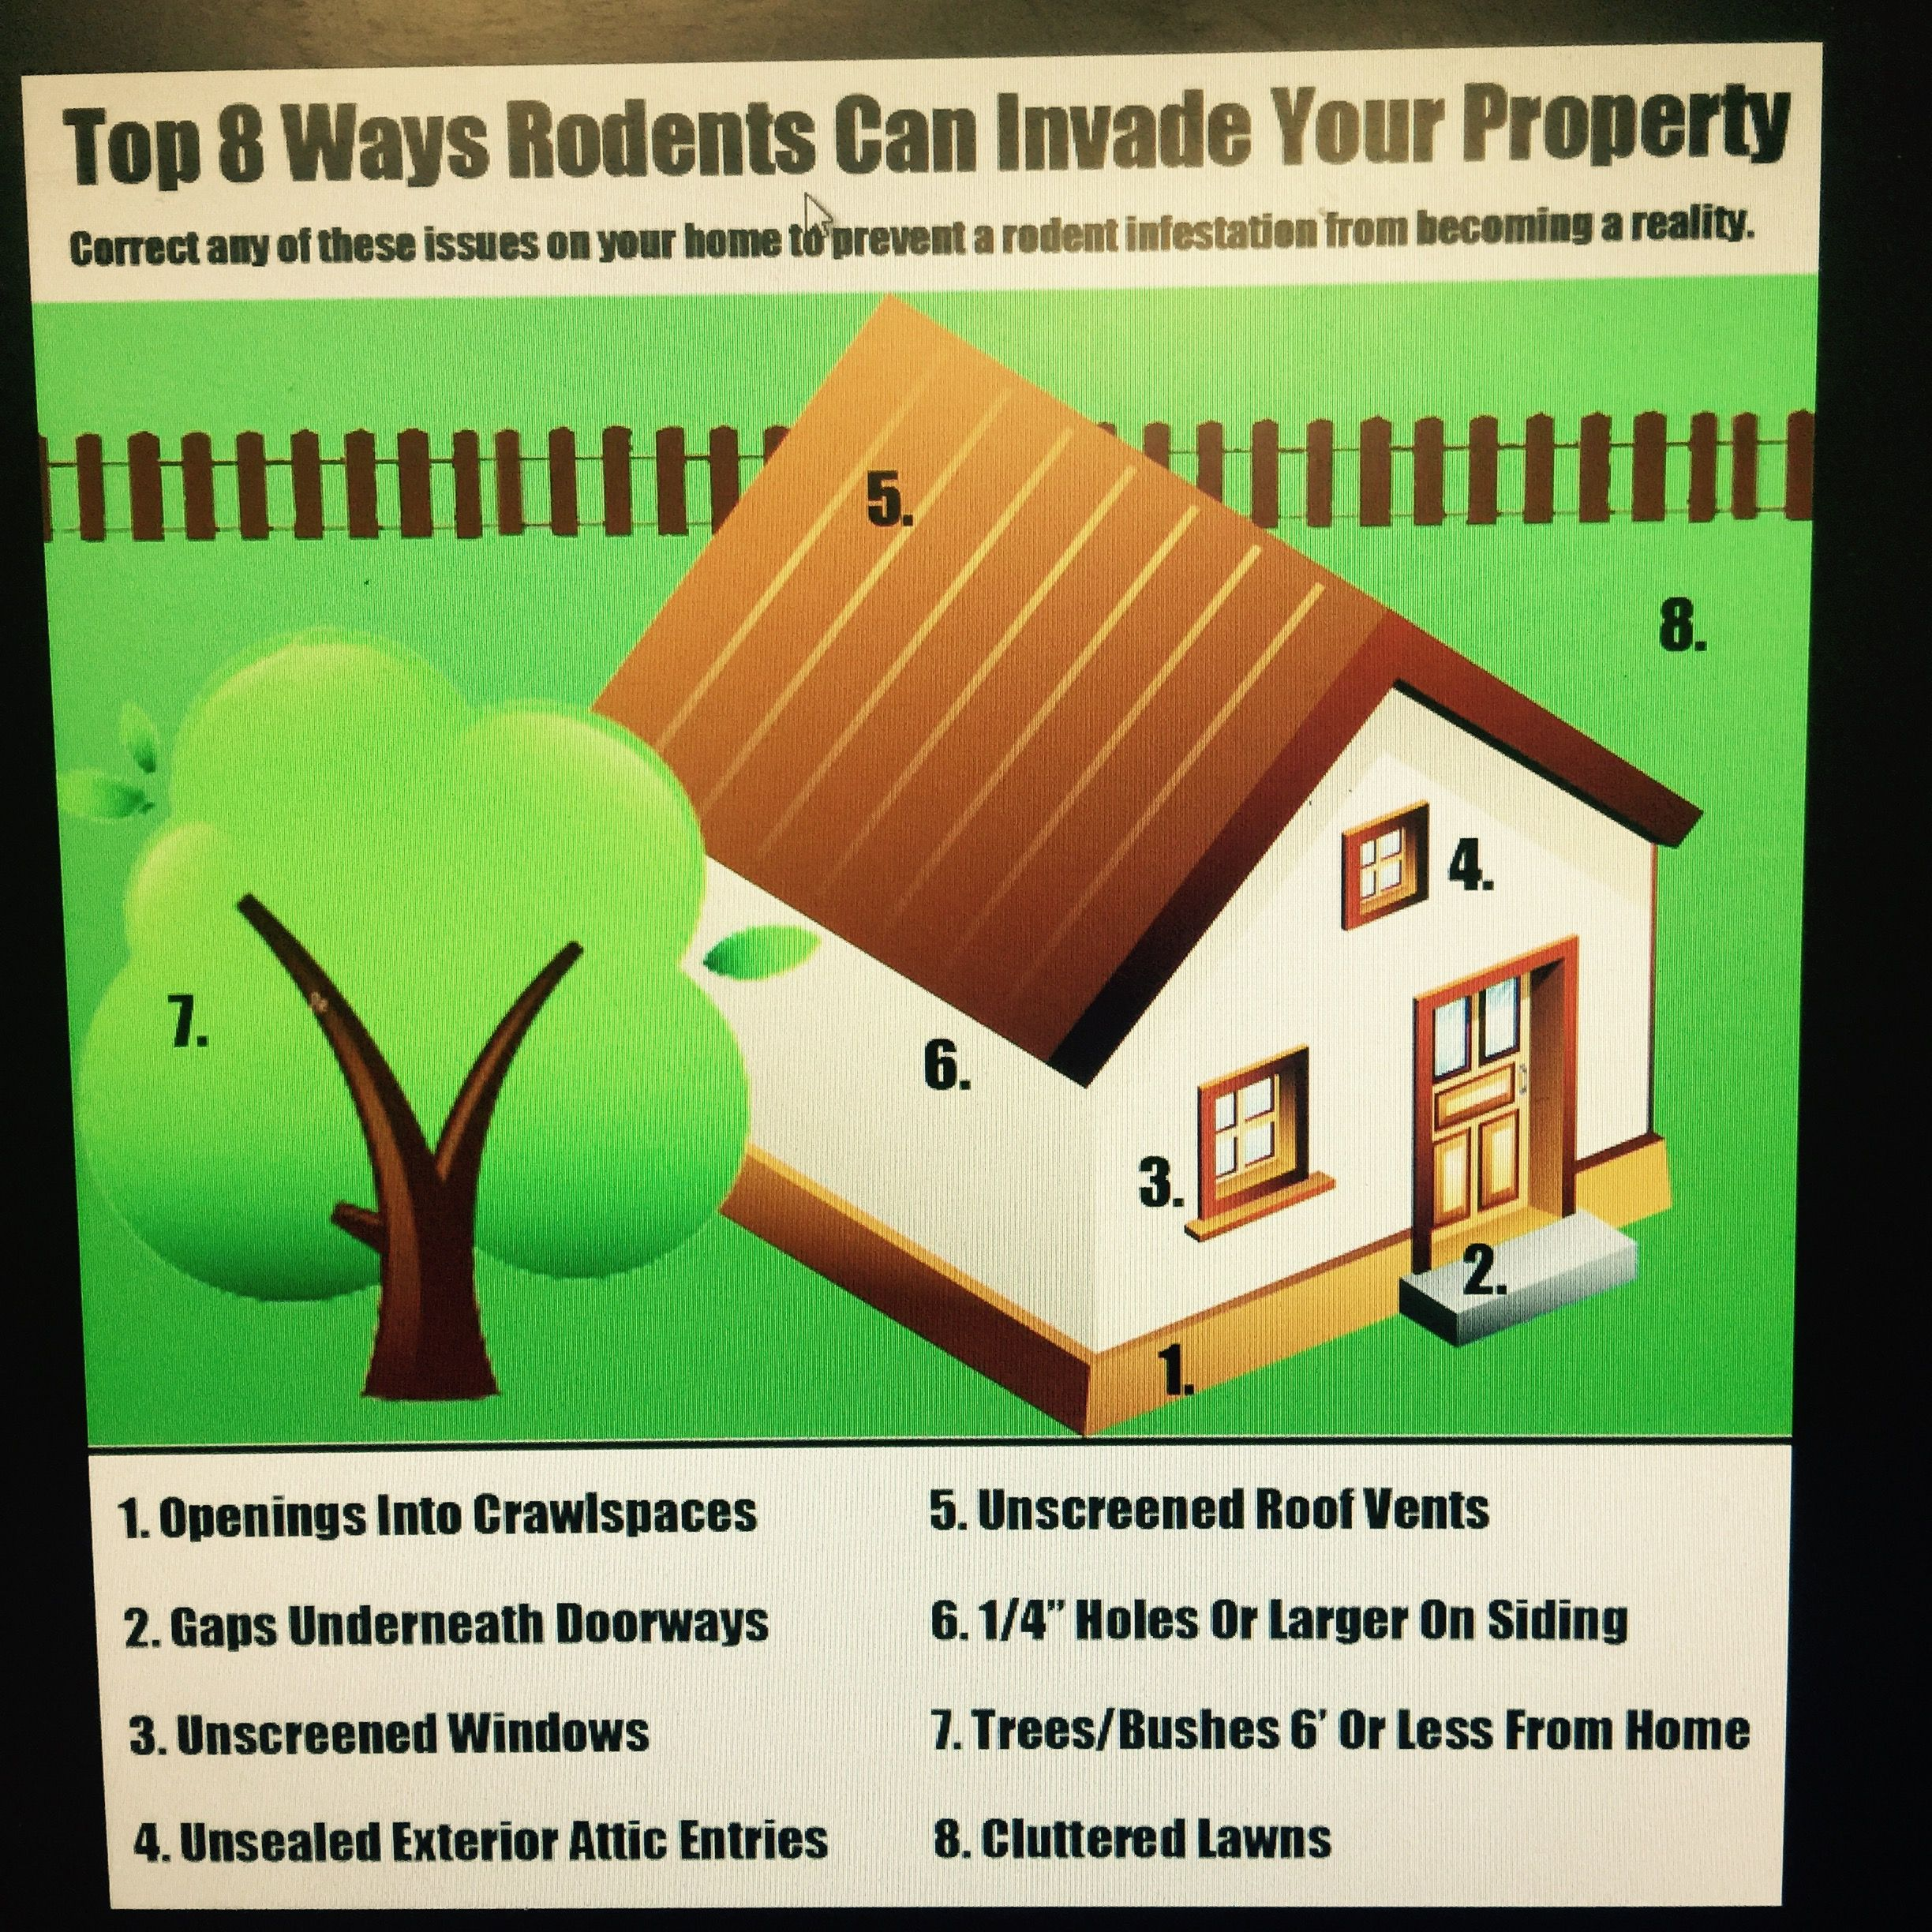 Tips to rodent proof your home | Pest Control Mice | Diy